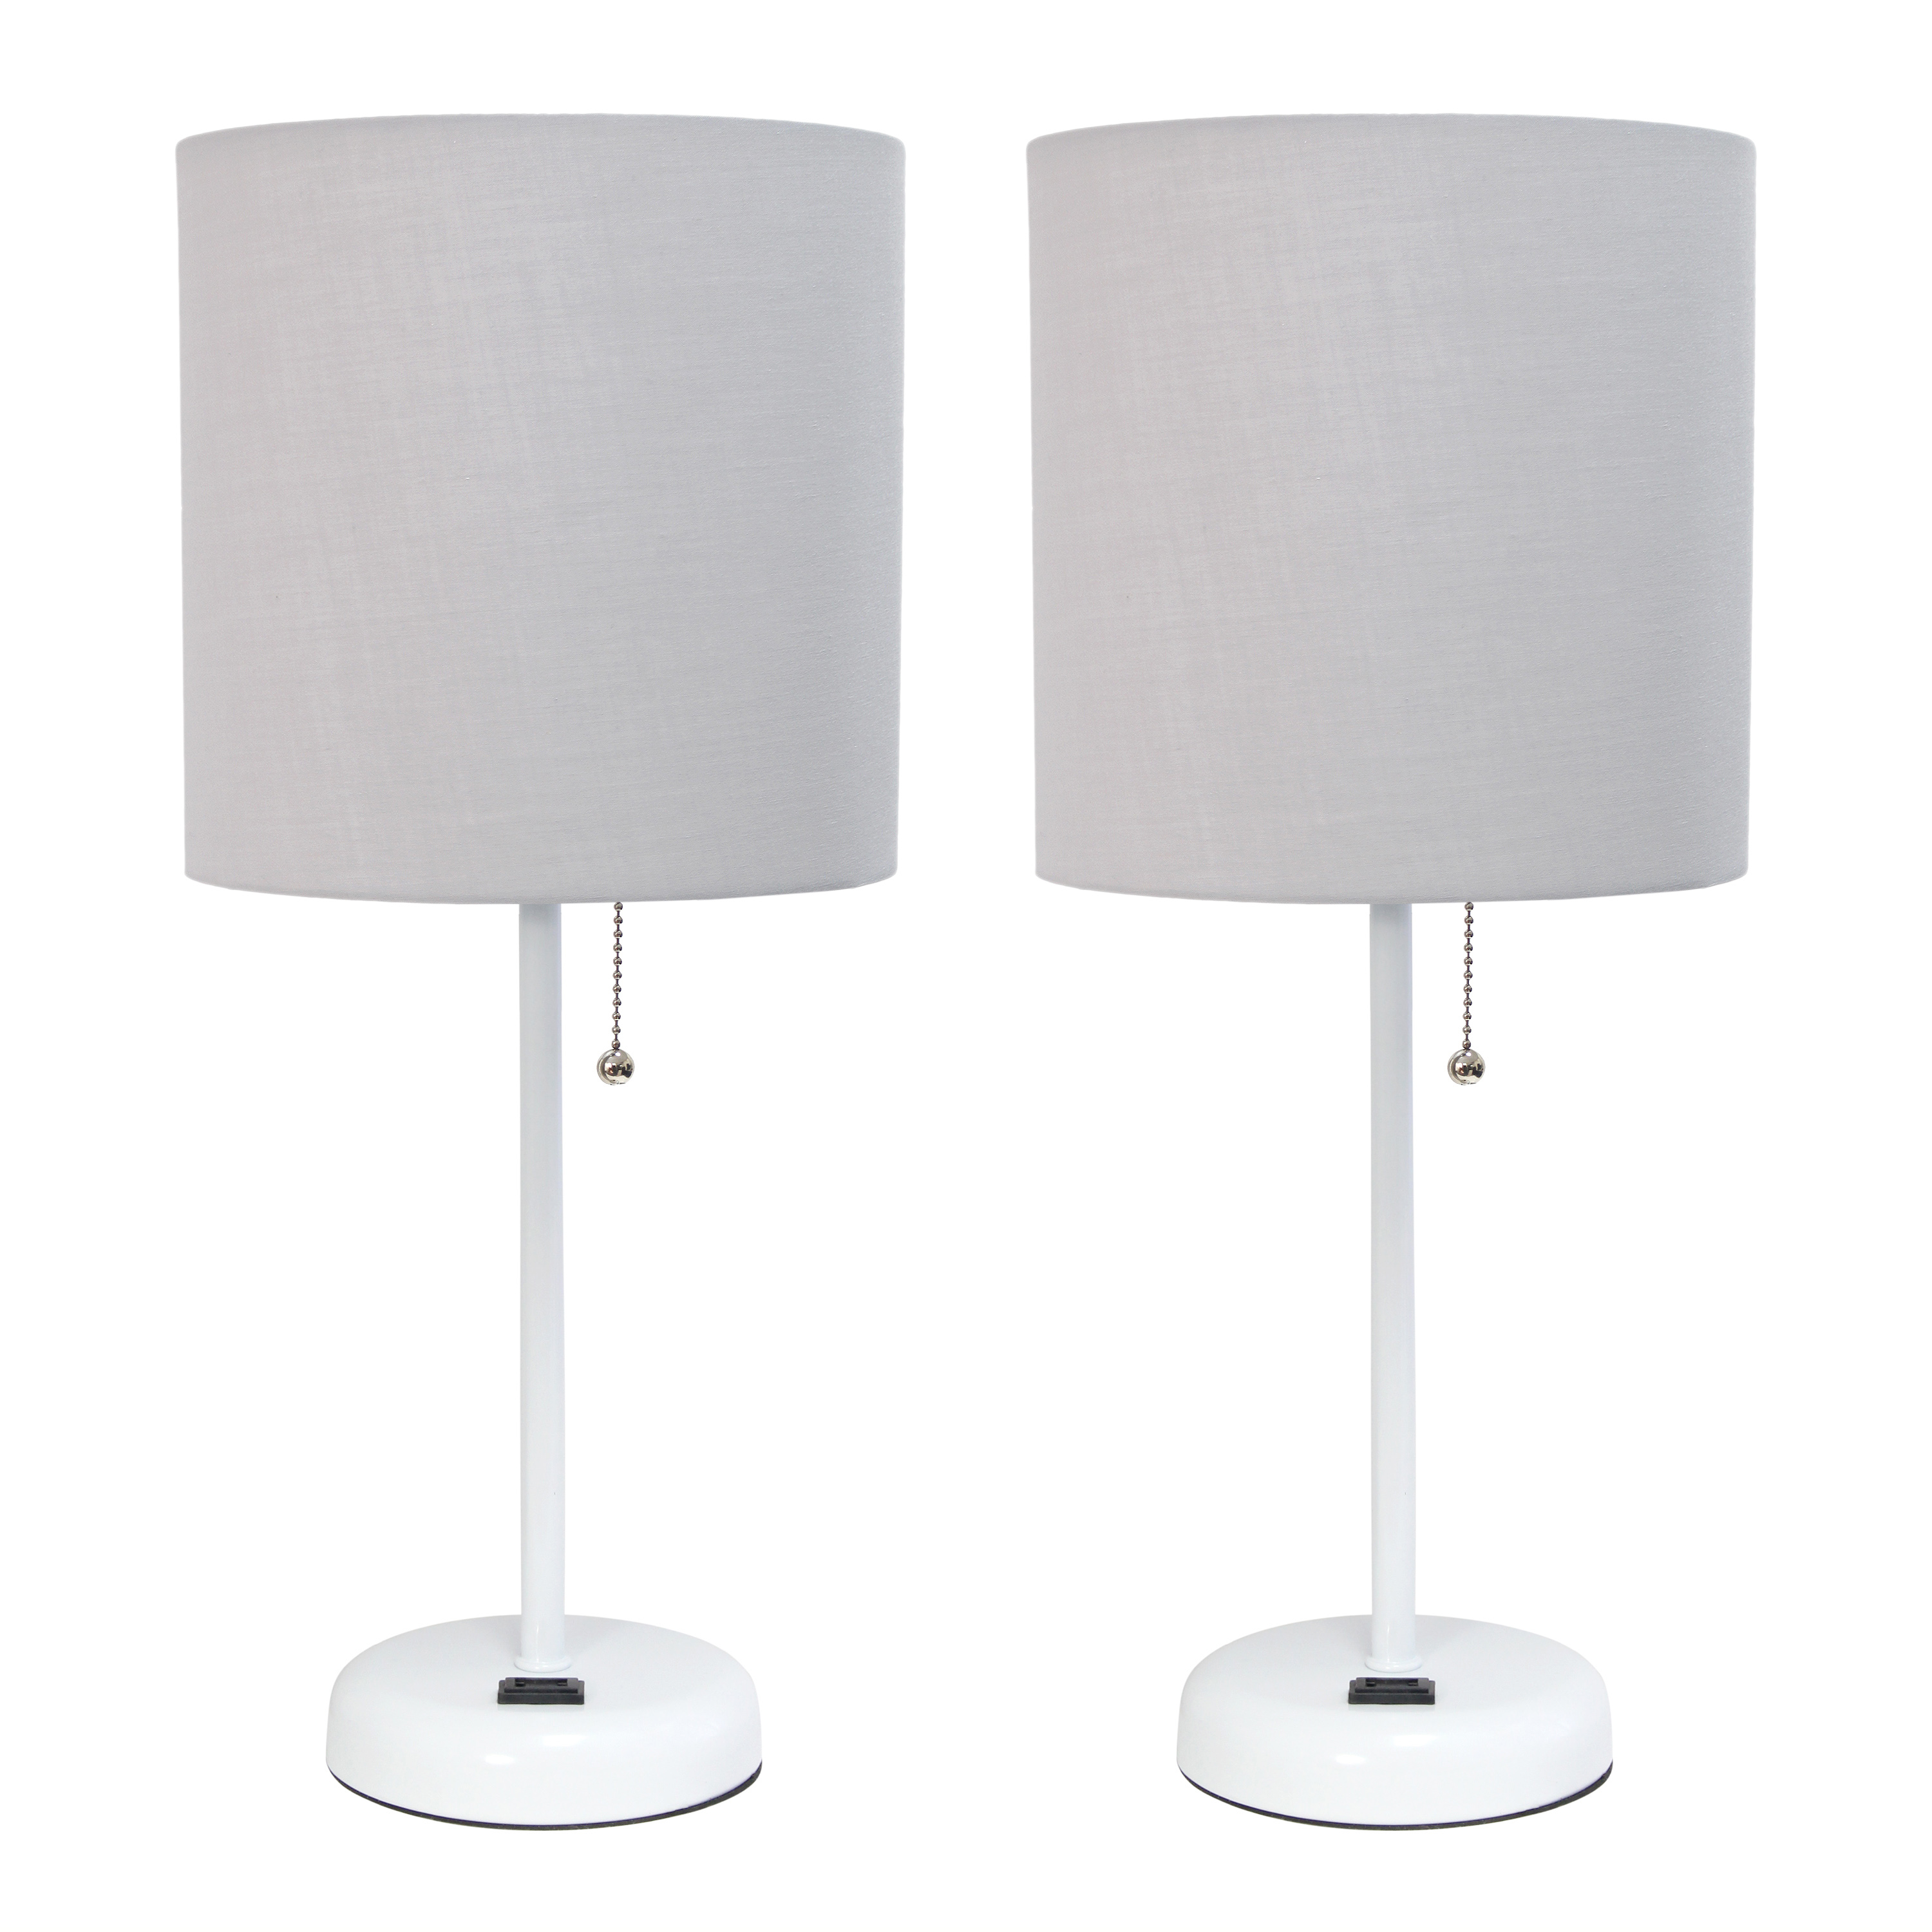 LimeLights White Stick Lamp with Charging Outlet and Fabric Shade 2 Pack Set, Gray